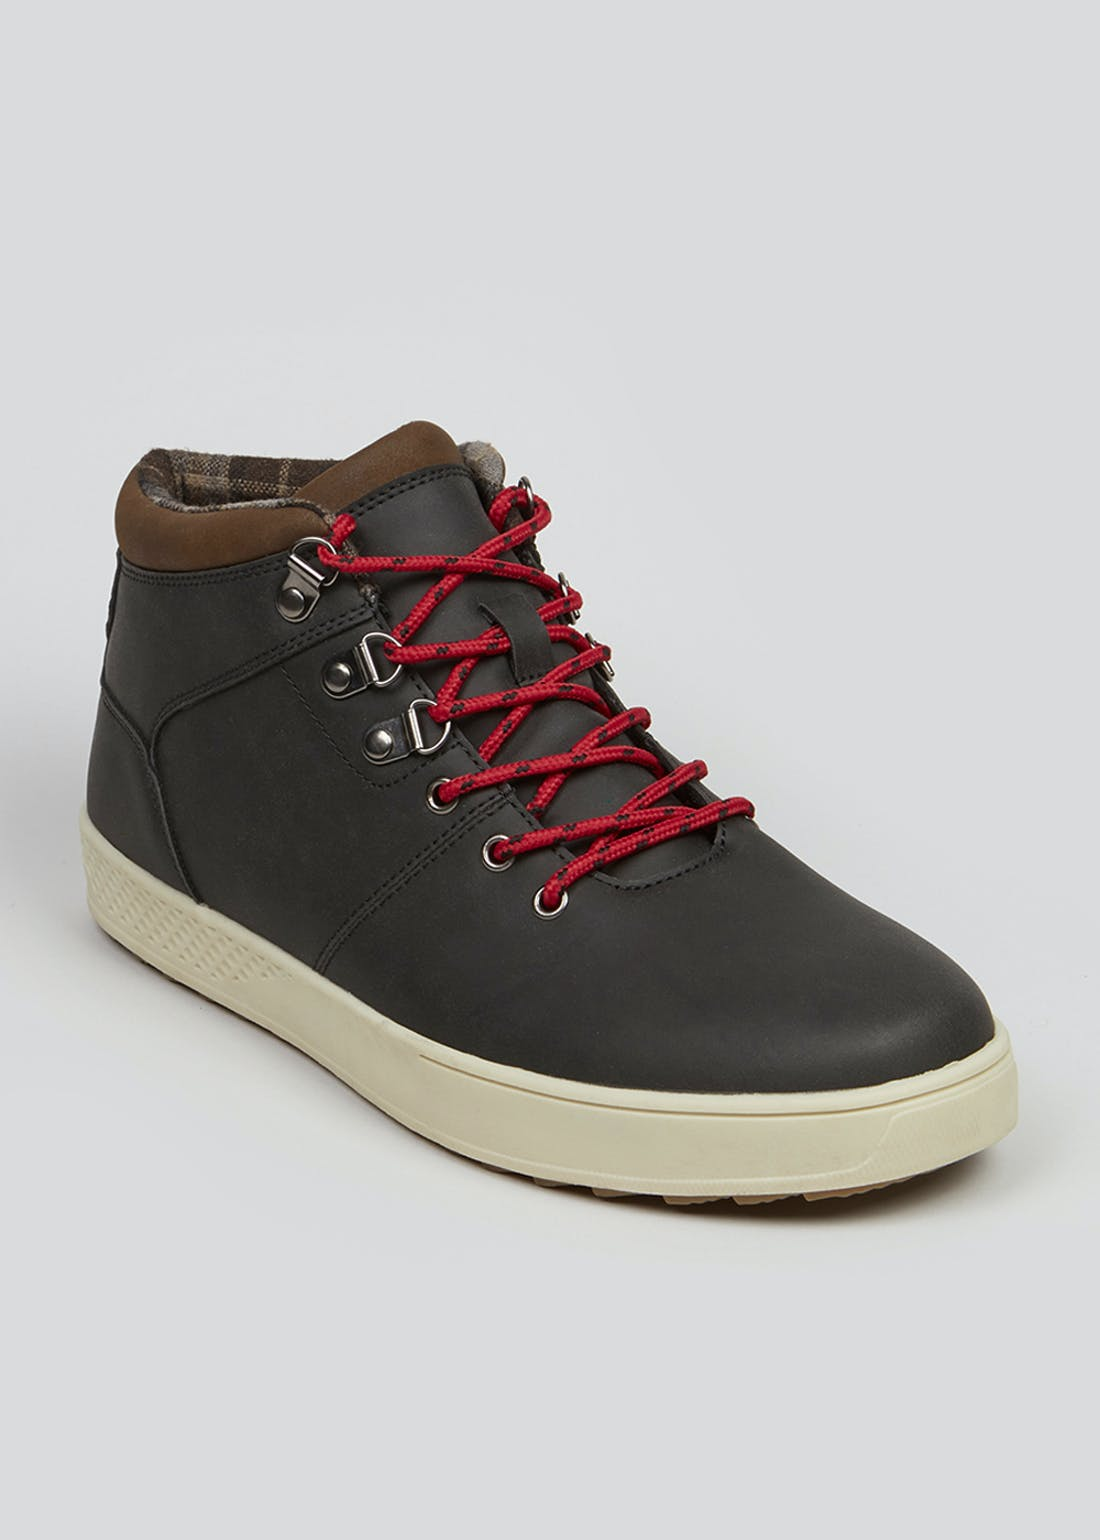 Black Lace Up Hiker Boots